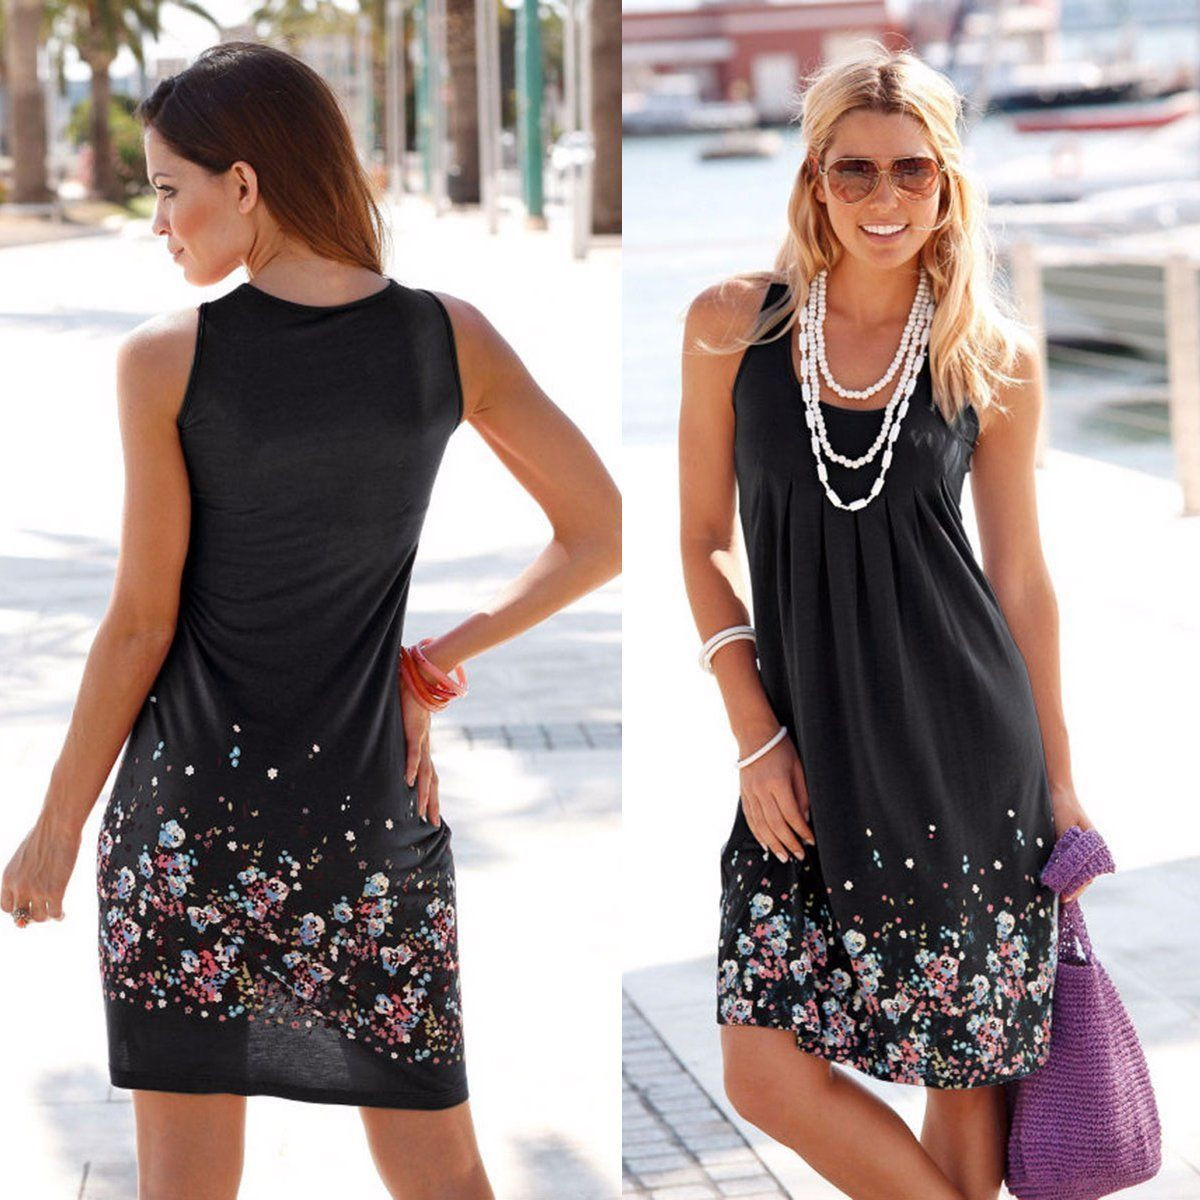 Women Dress Summer Dresses New Casual Female Clothing Sleeveless Party Midi Dresses-Dress-SheSimplyShops